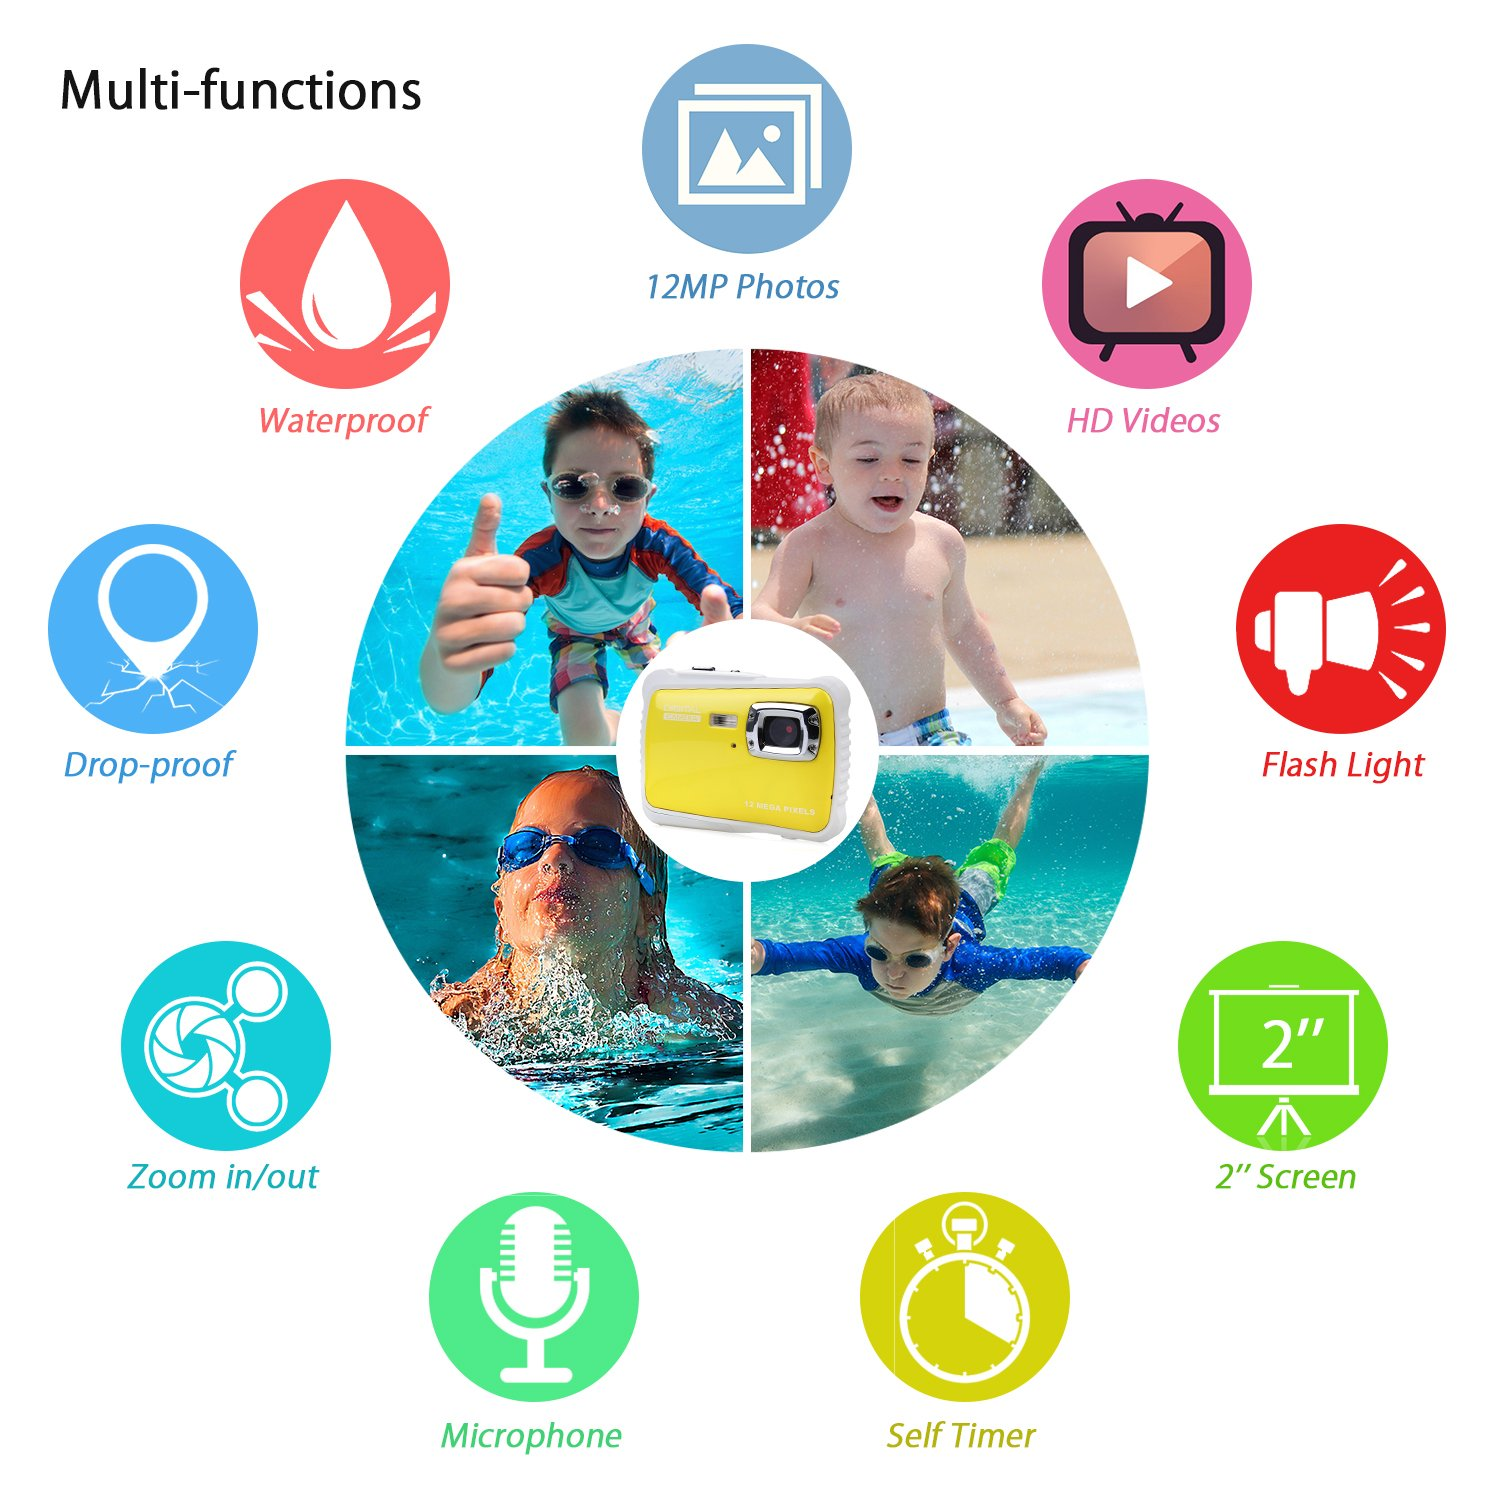 BOMEON Waterproof Camera for Kids Underwater Action Camera Camcorder with 12MP HD 8X Digital Zoom Flash Mic 2.0 Inch LCD Display with 8G SD Card 3 Non-Rechargeable Batteries Included by BOMEON (Image #2)